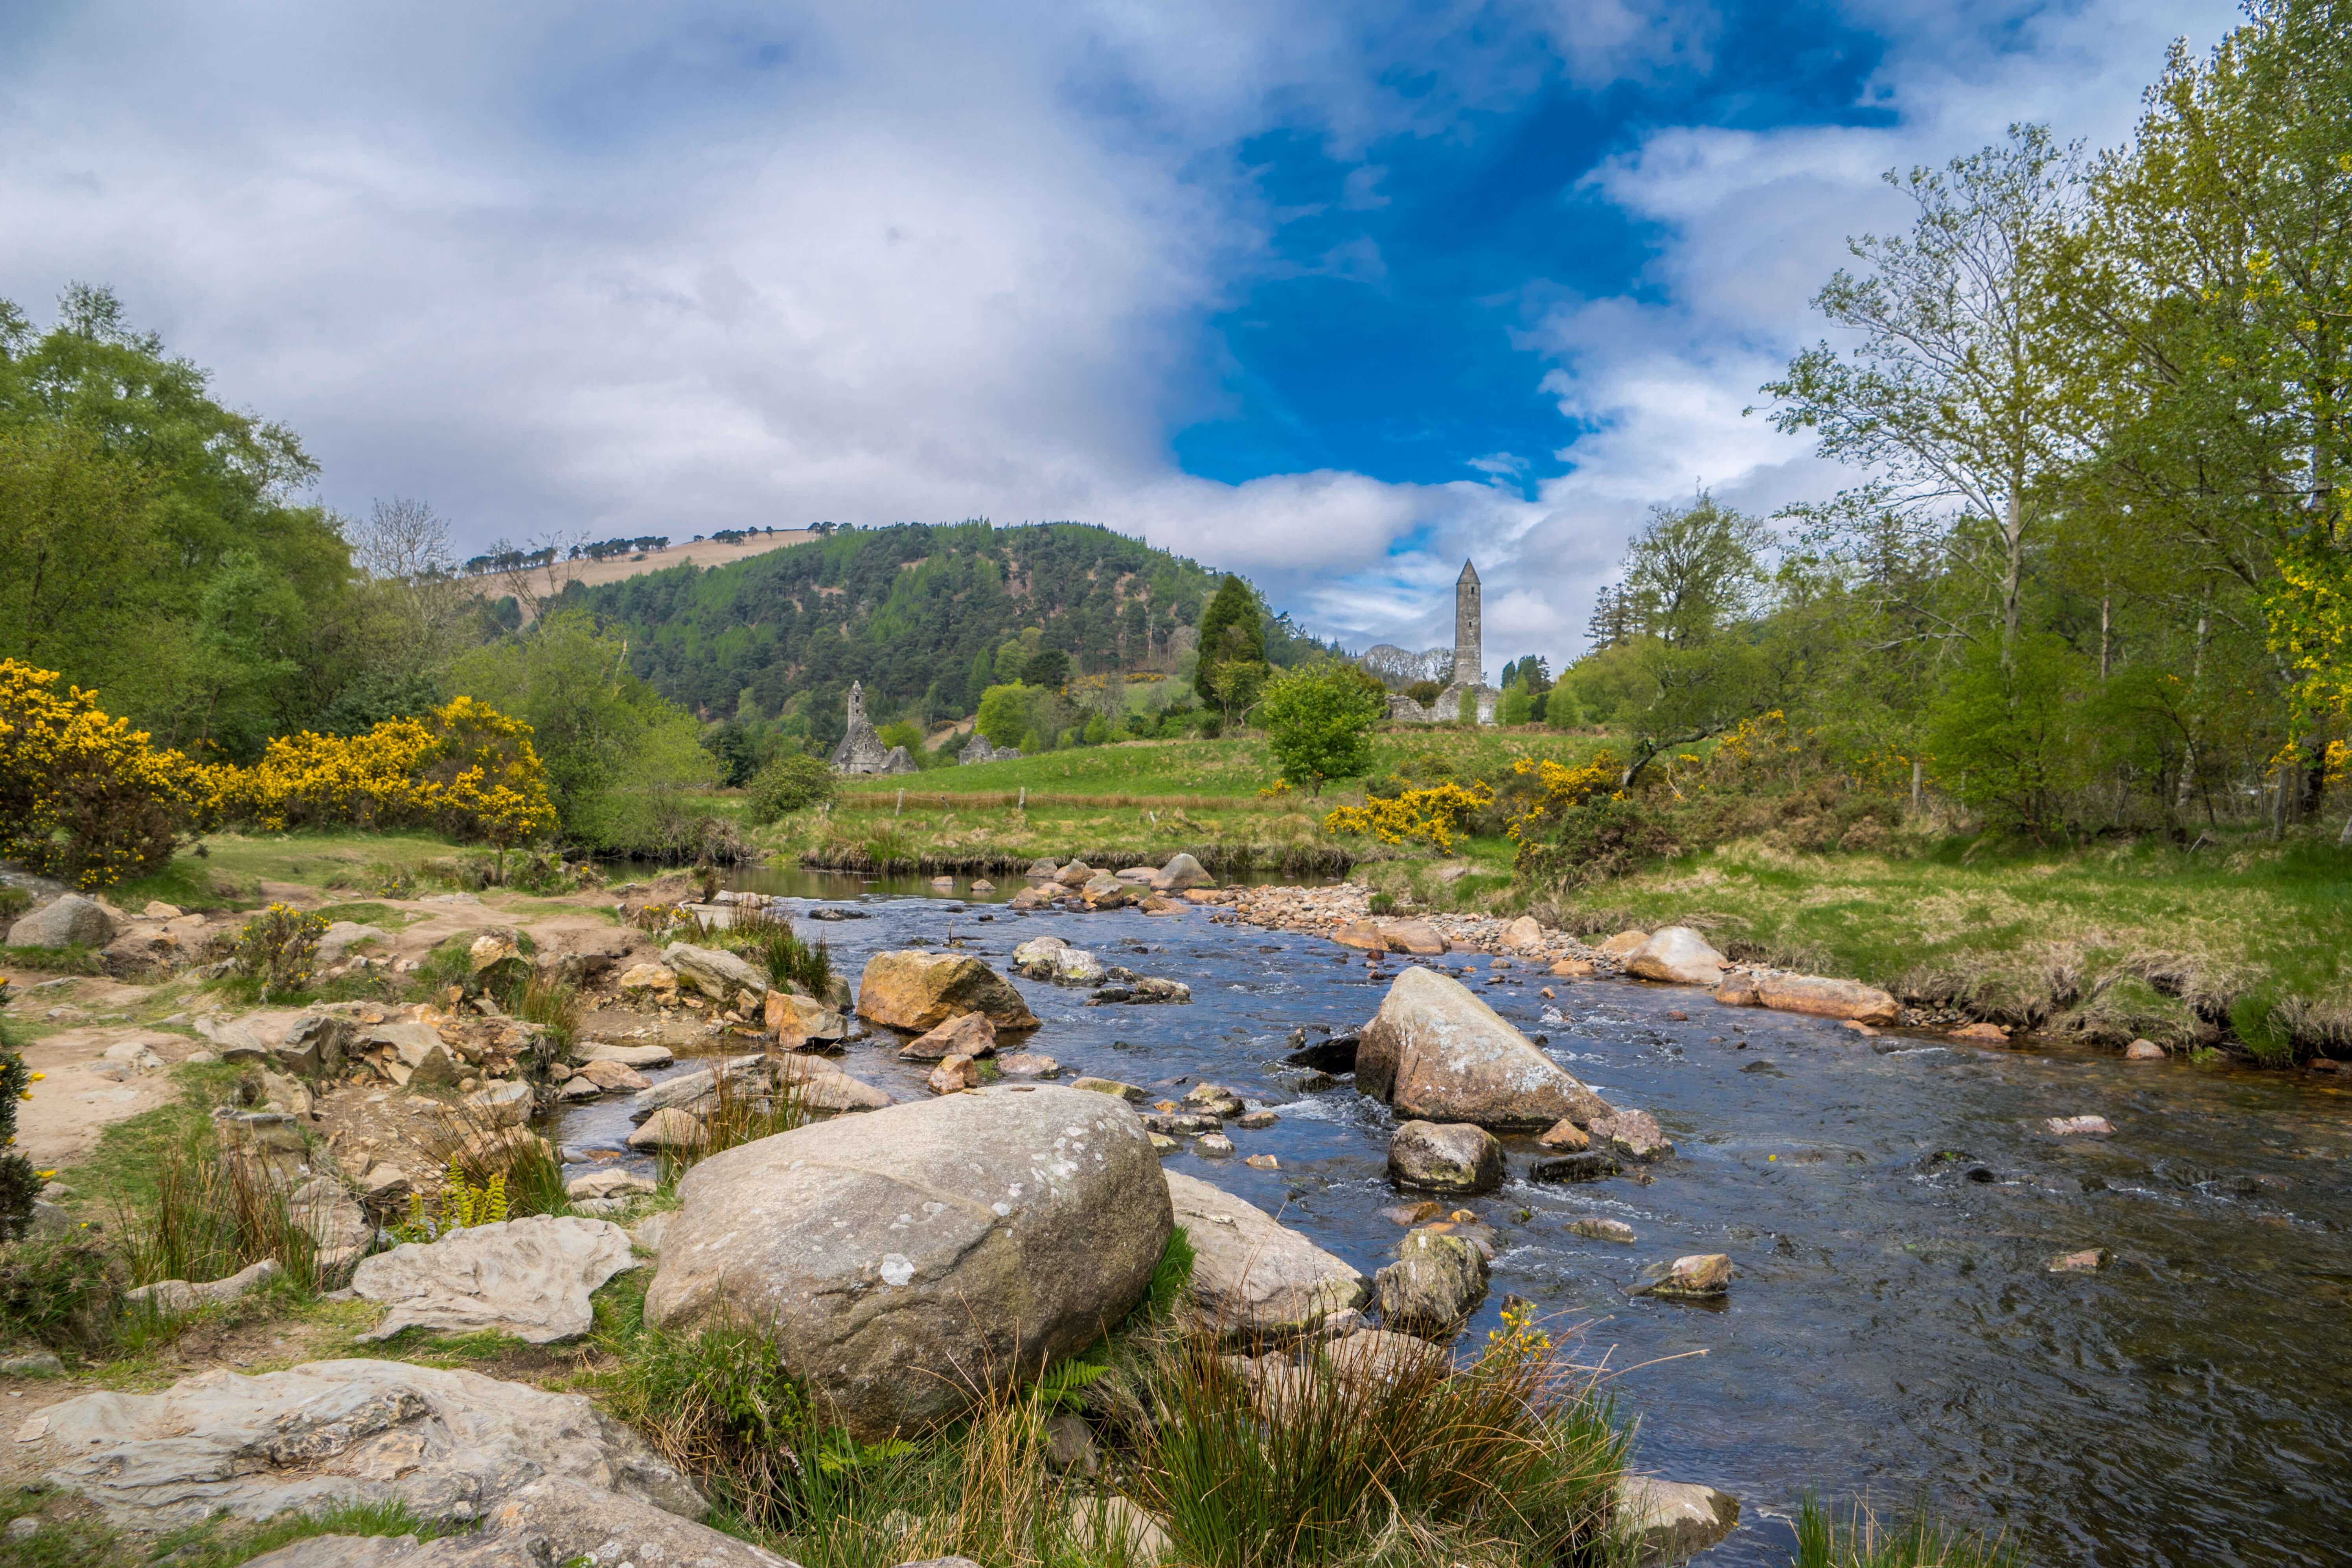 trips-ireland-hike-nature-under30experiences